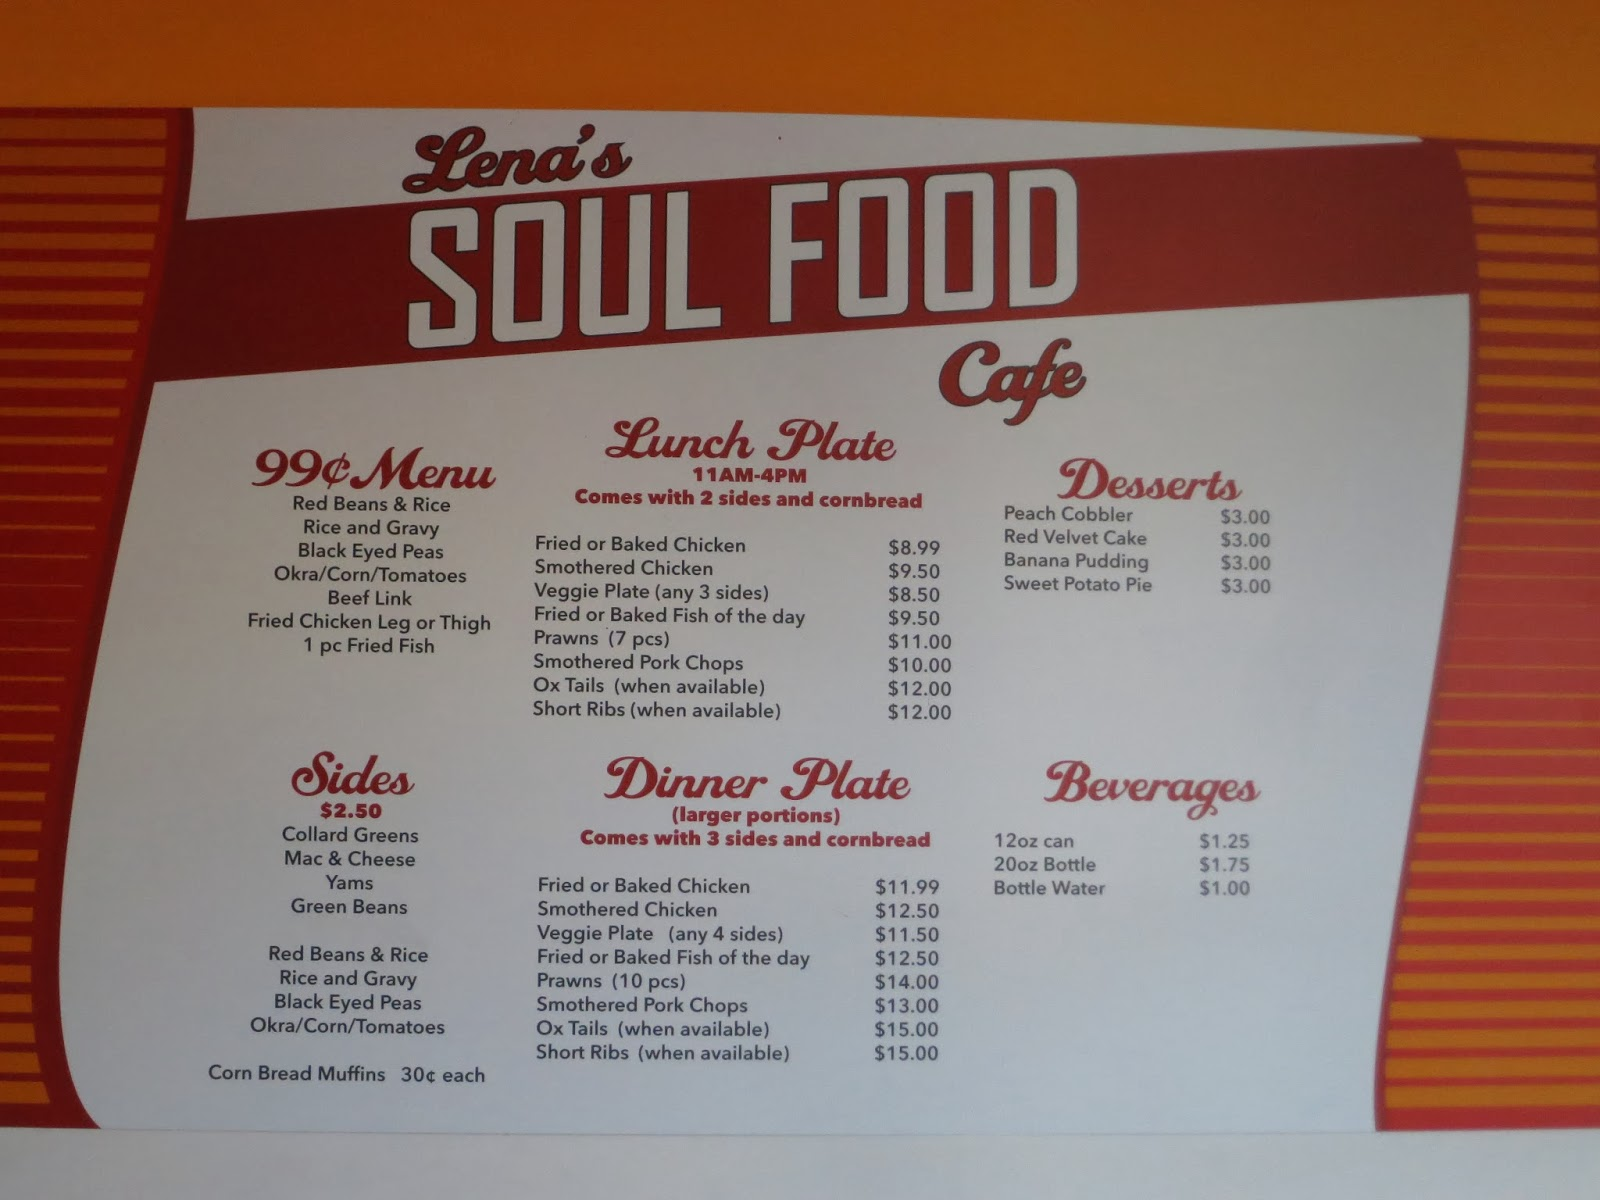 Soul Food Menu Templates Pictures To Pin On Pinterest